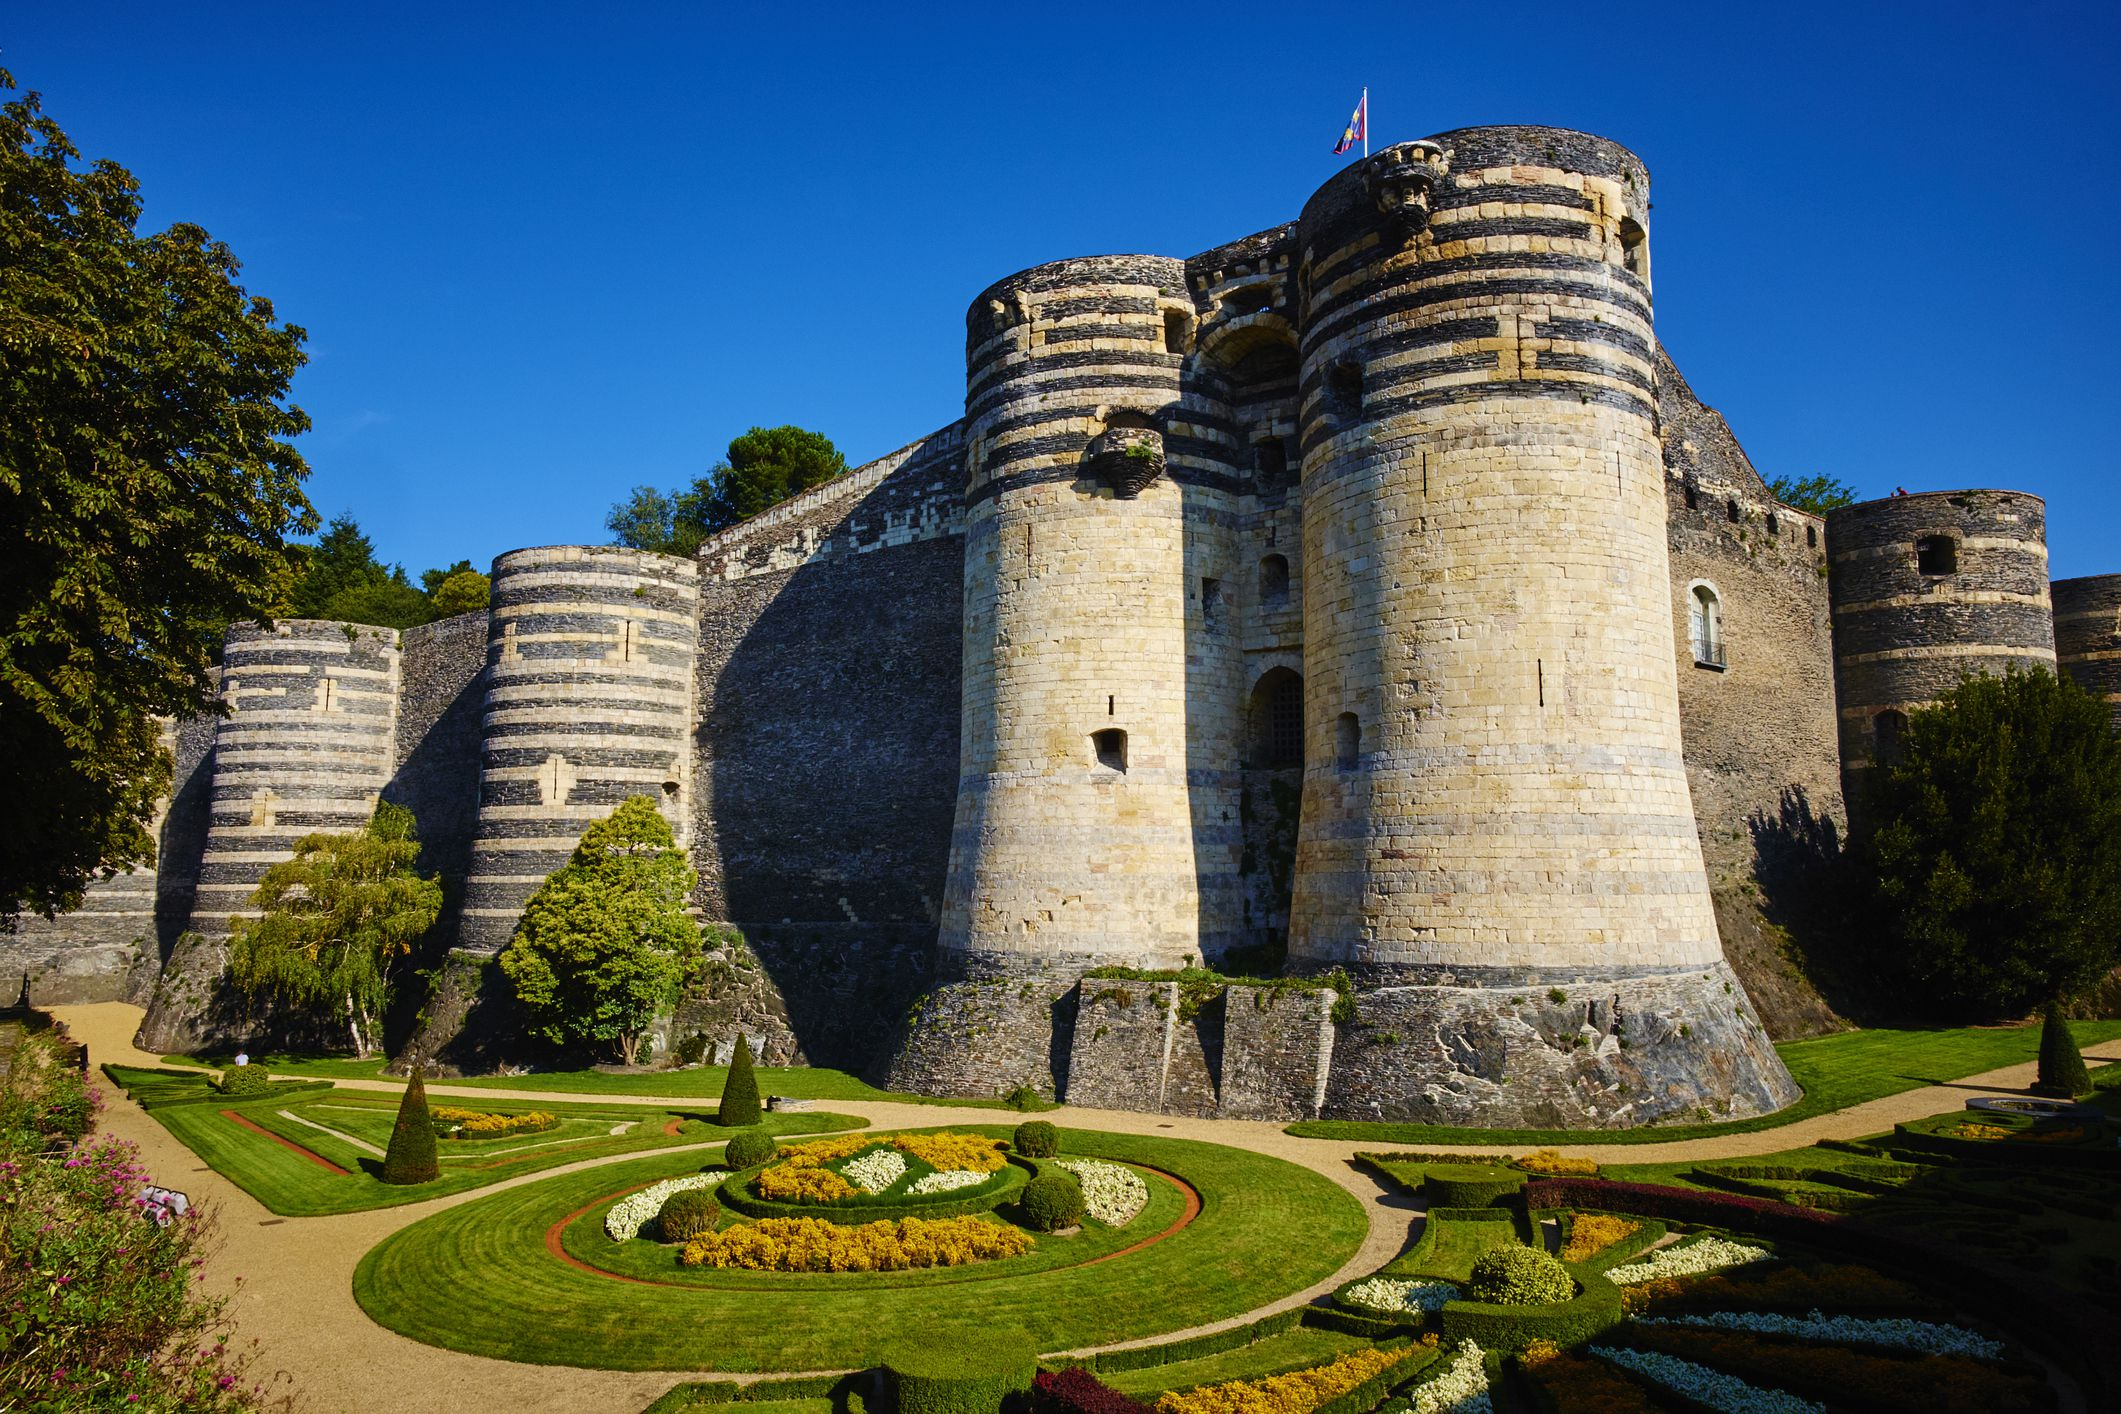 Top Attractions In Angers In The Loire Valley